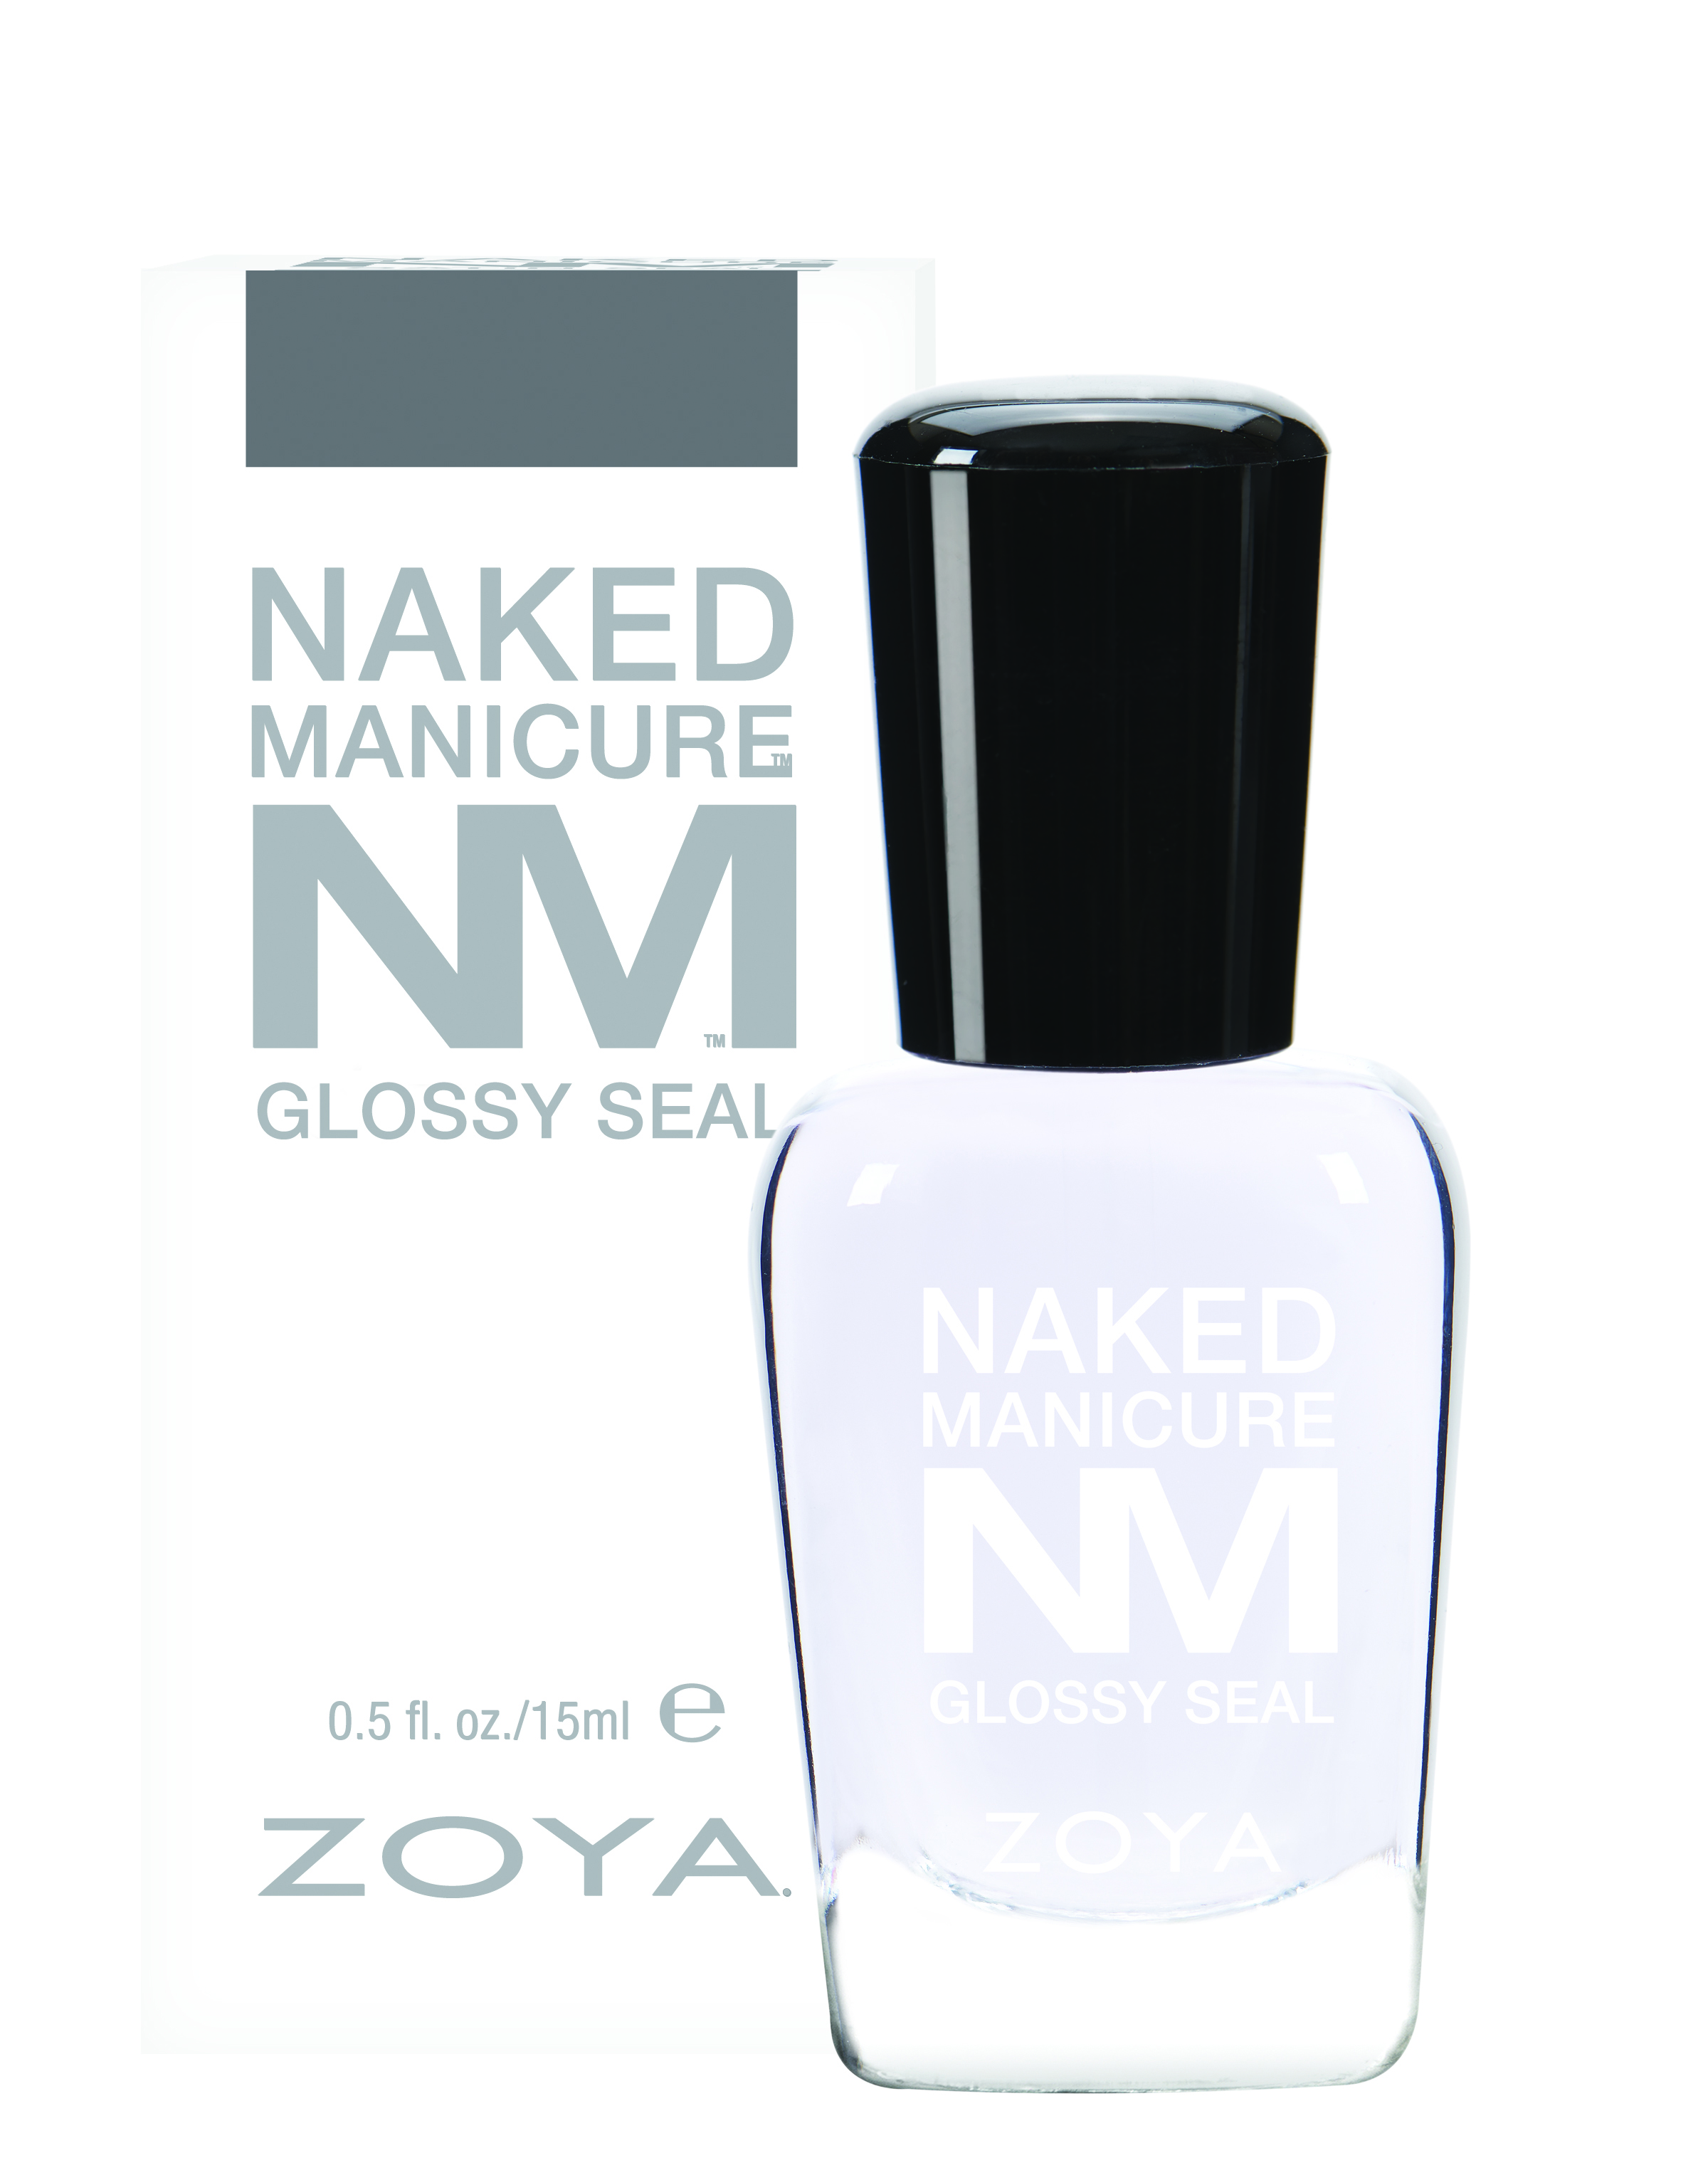 Naked Manicure Glossy Seal Thumbnail